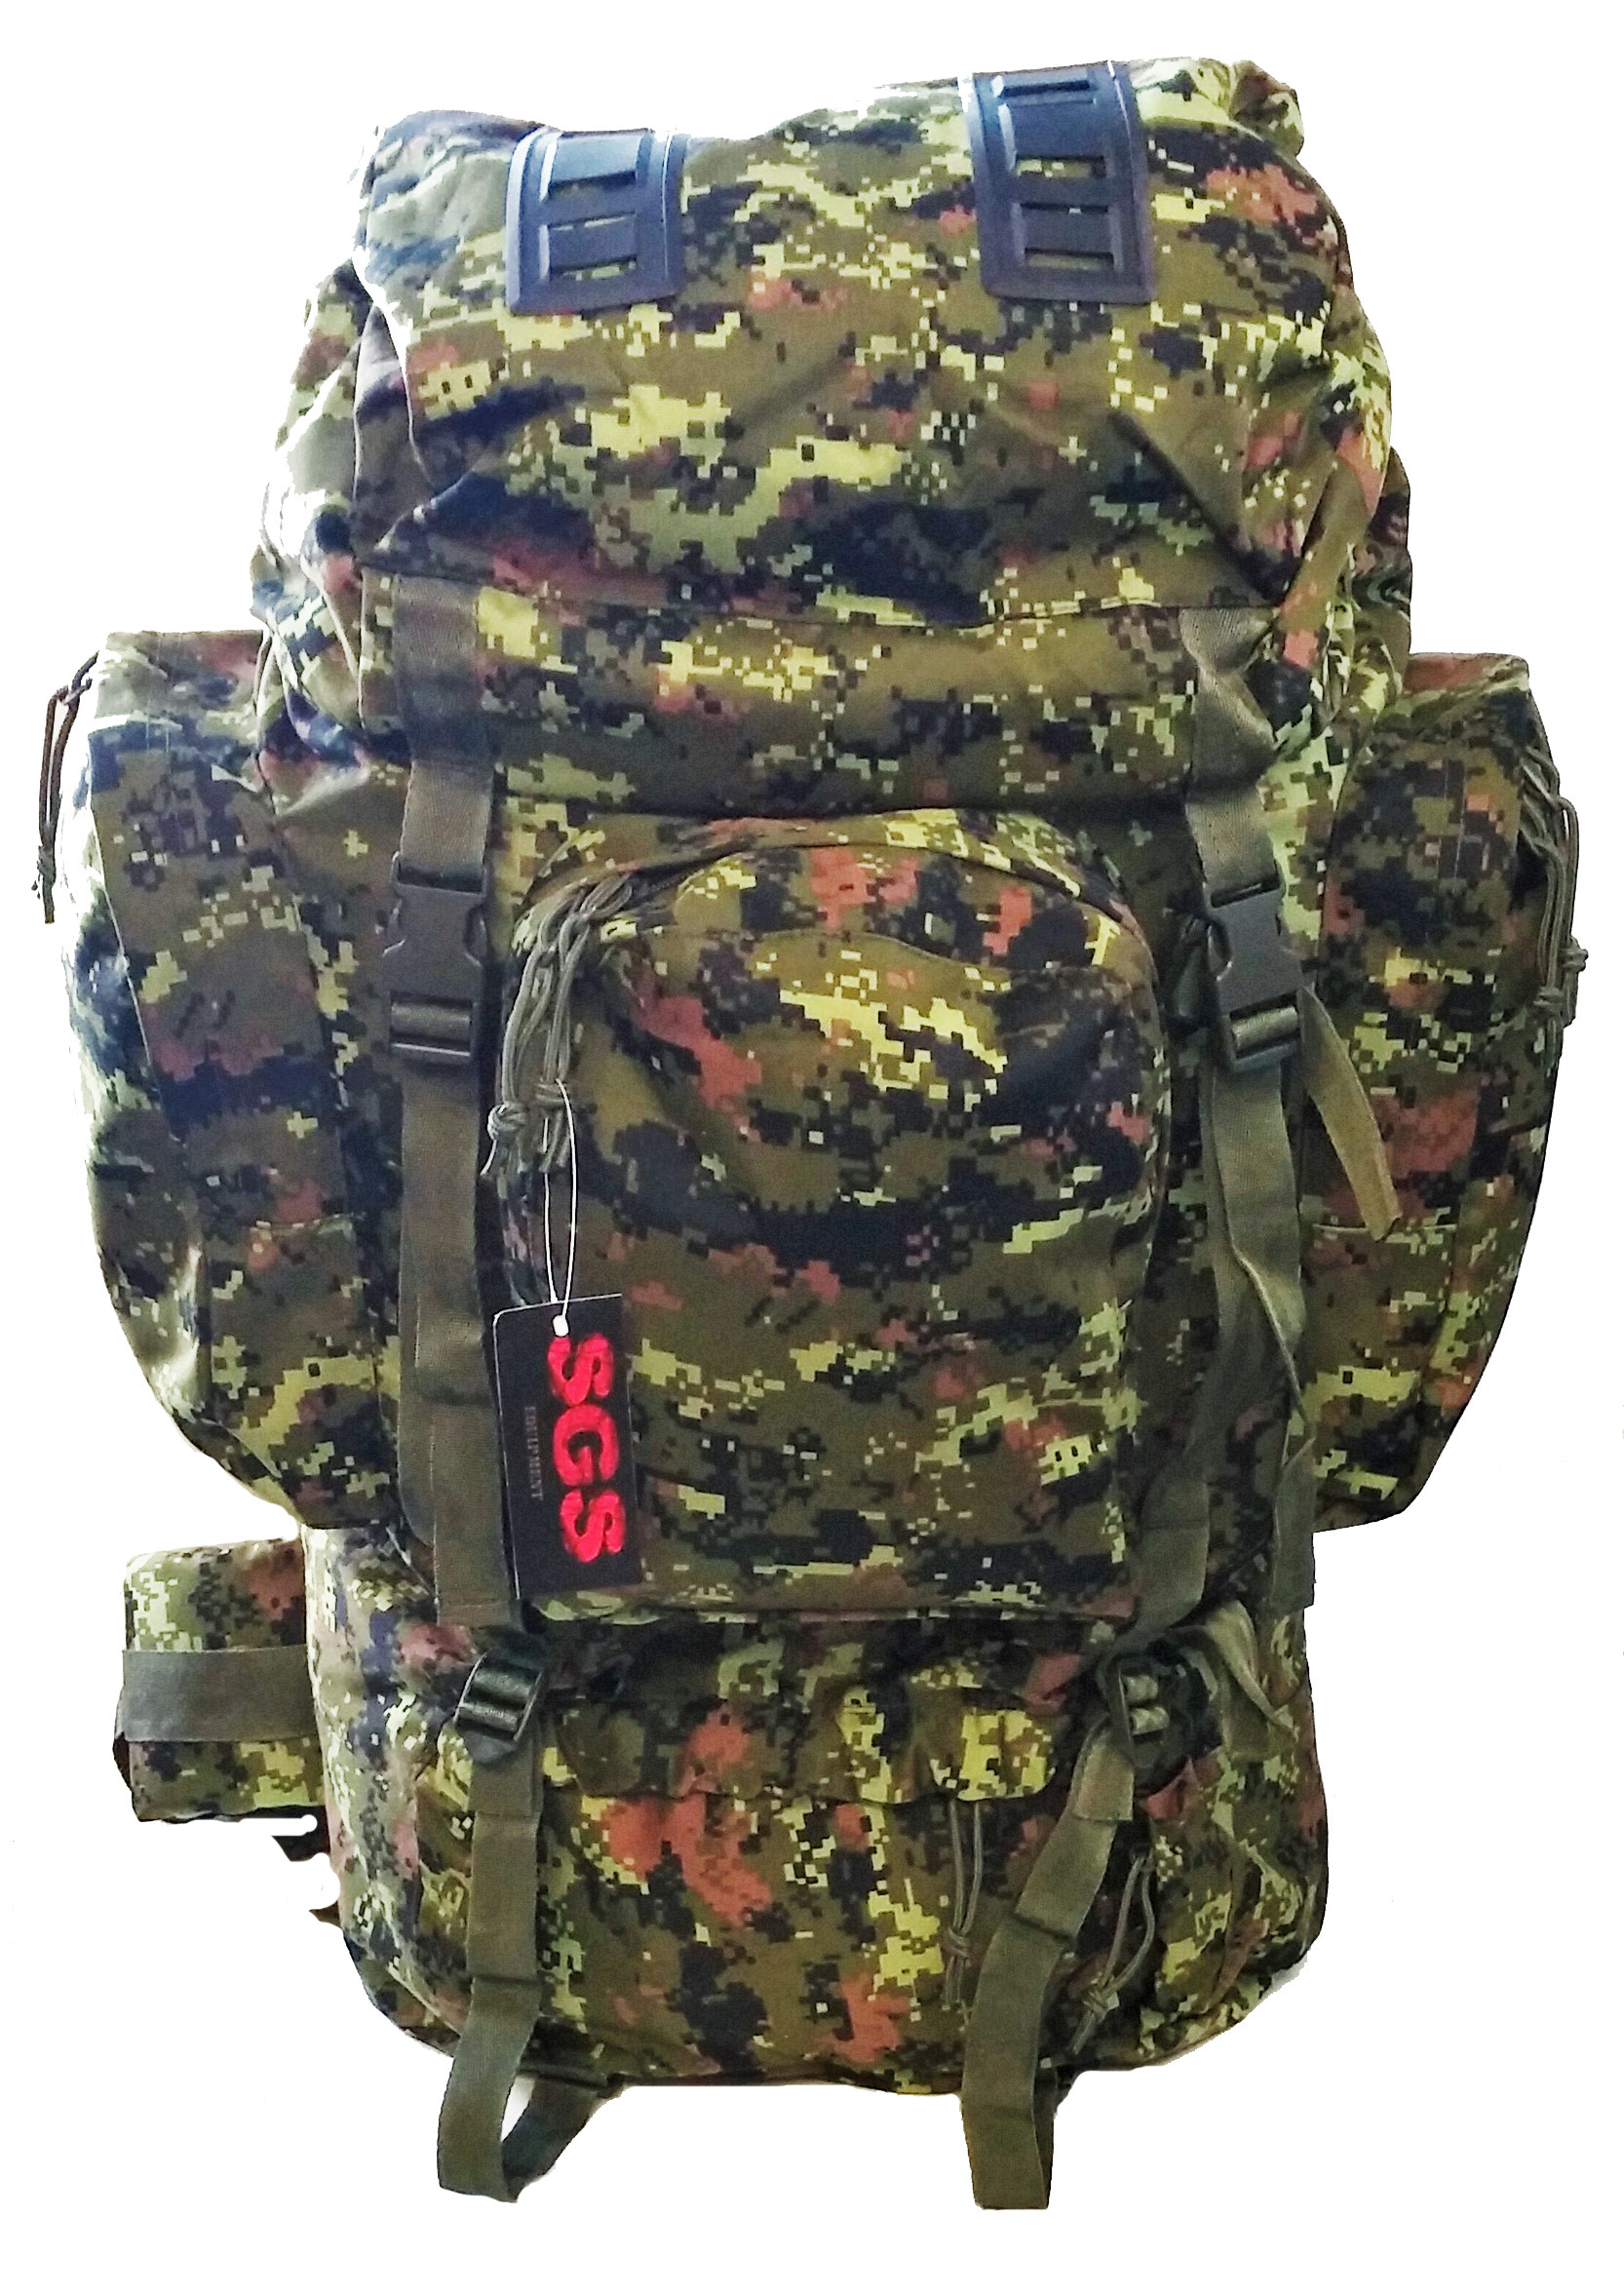 Canadian digital combat rack sack